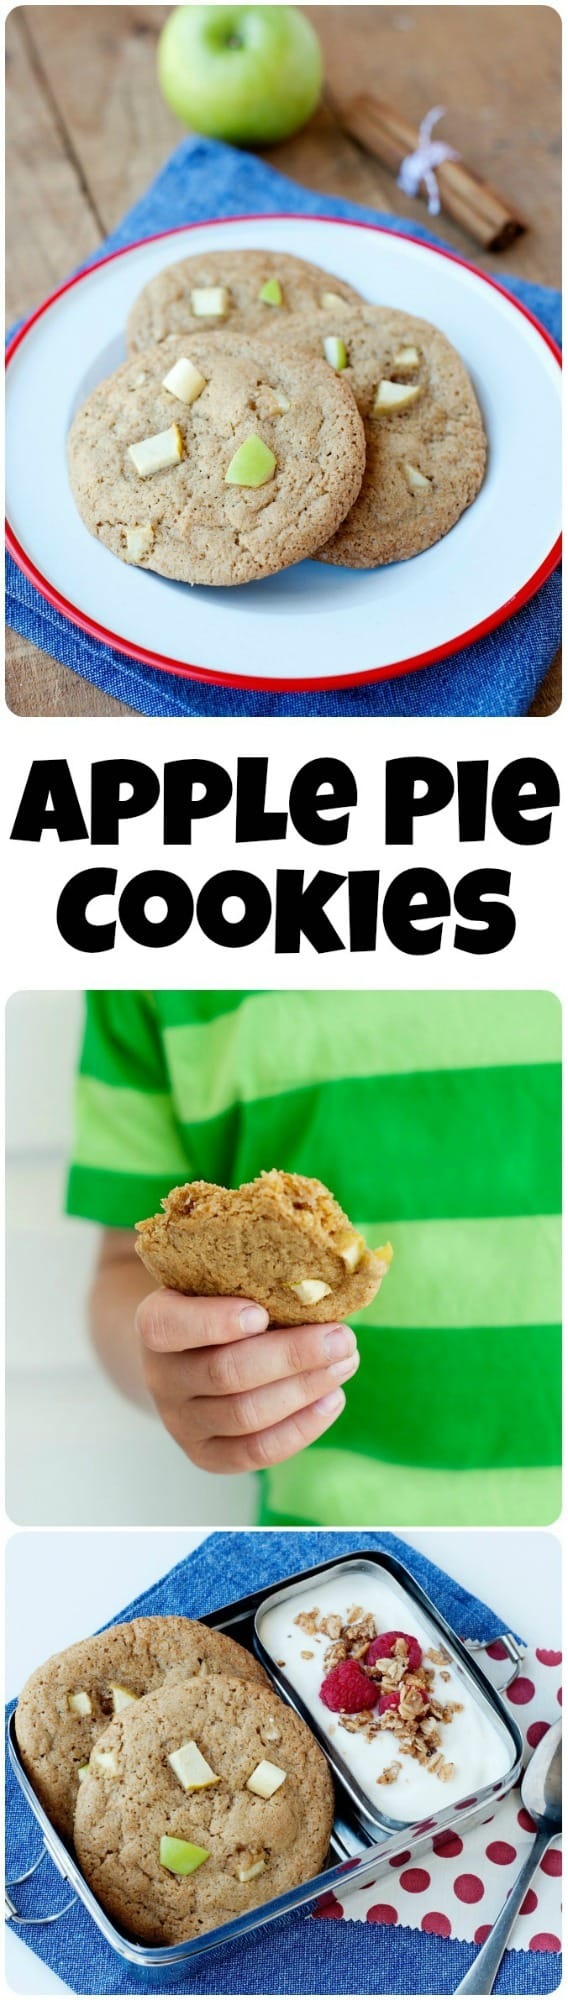 This apple pie cookies recipe is perfect for a delicious lunchbox treat or a bake sale!